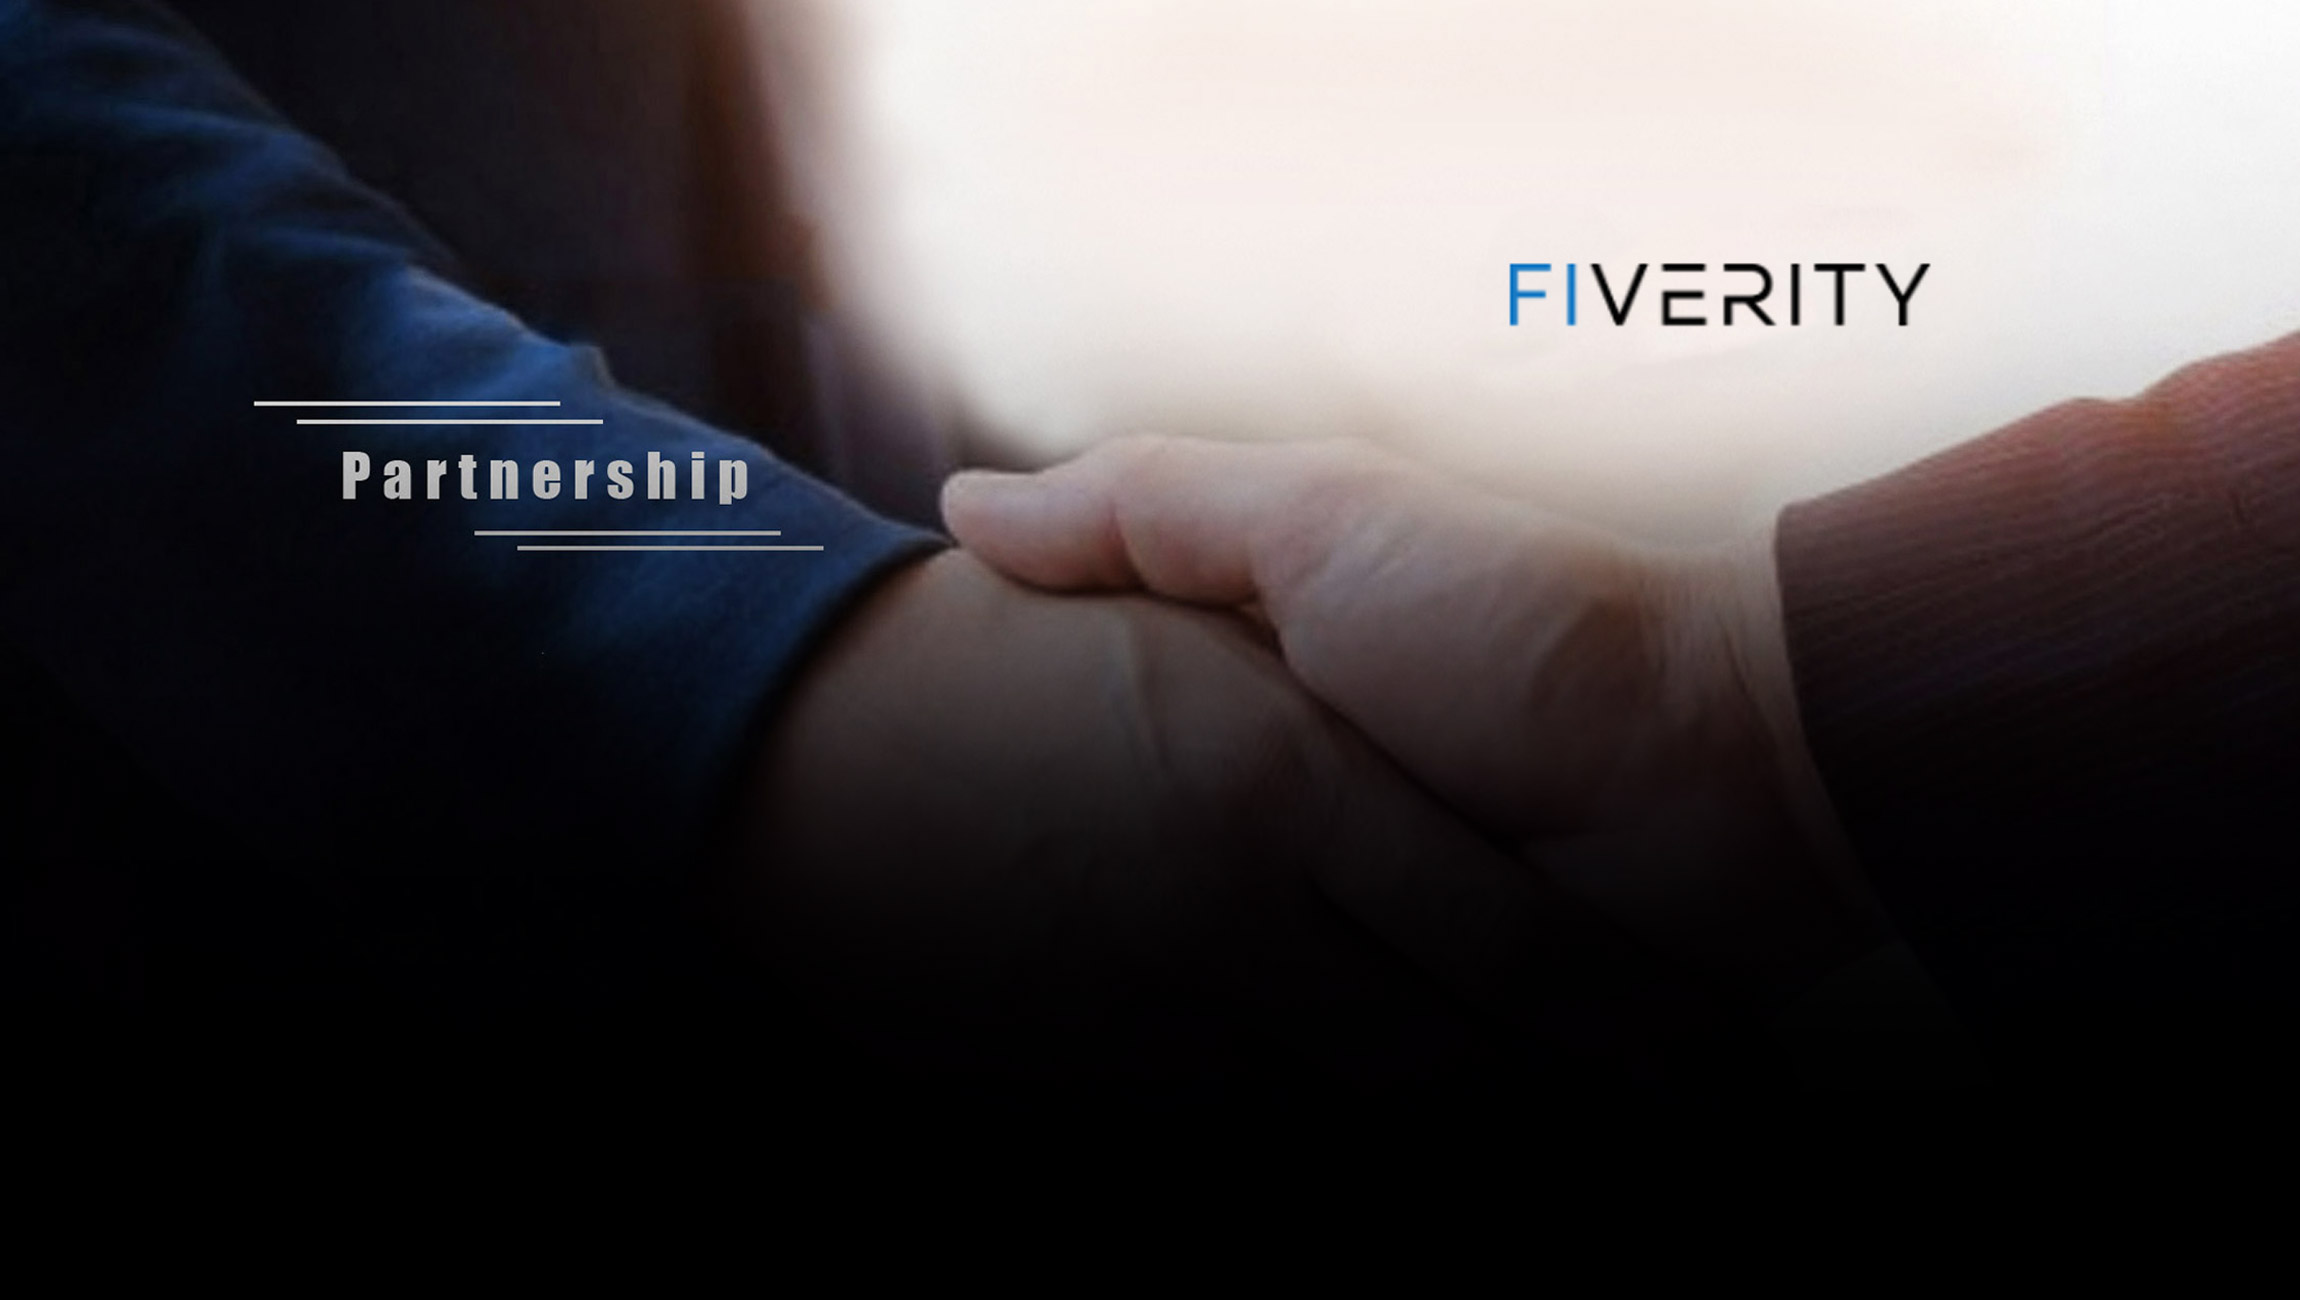 FiVerity Launches Collaborative AI Solution with Support from National Banks, Credit Unions, and Cyber Fraud and Threat Intelligence Partnership